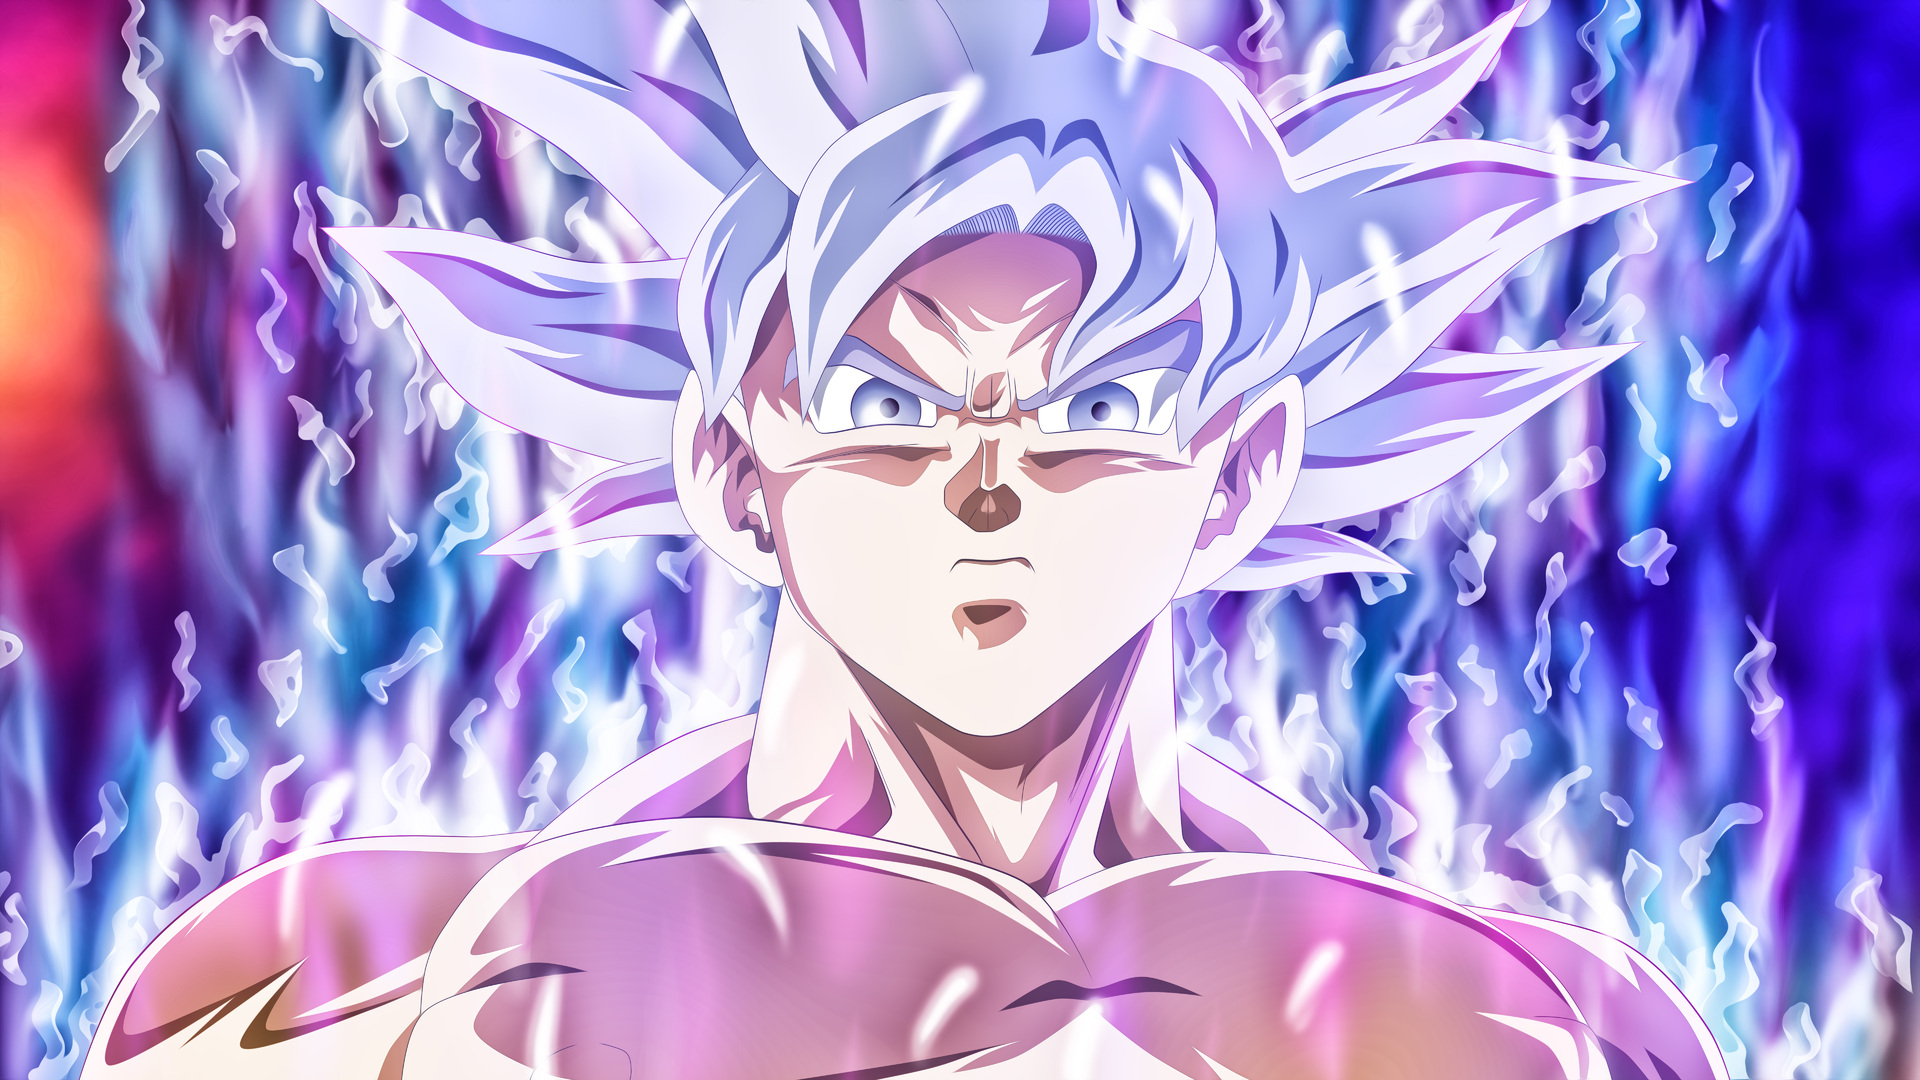 Goku Ultra Instinct Wallpaper 1080p